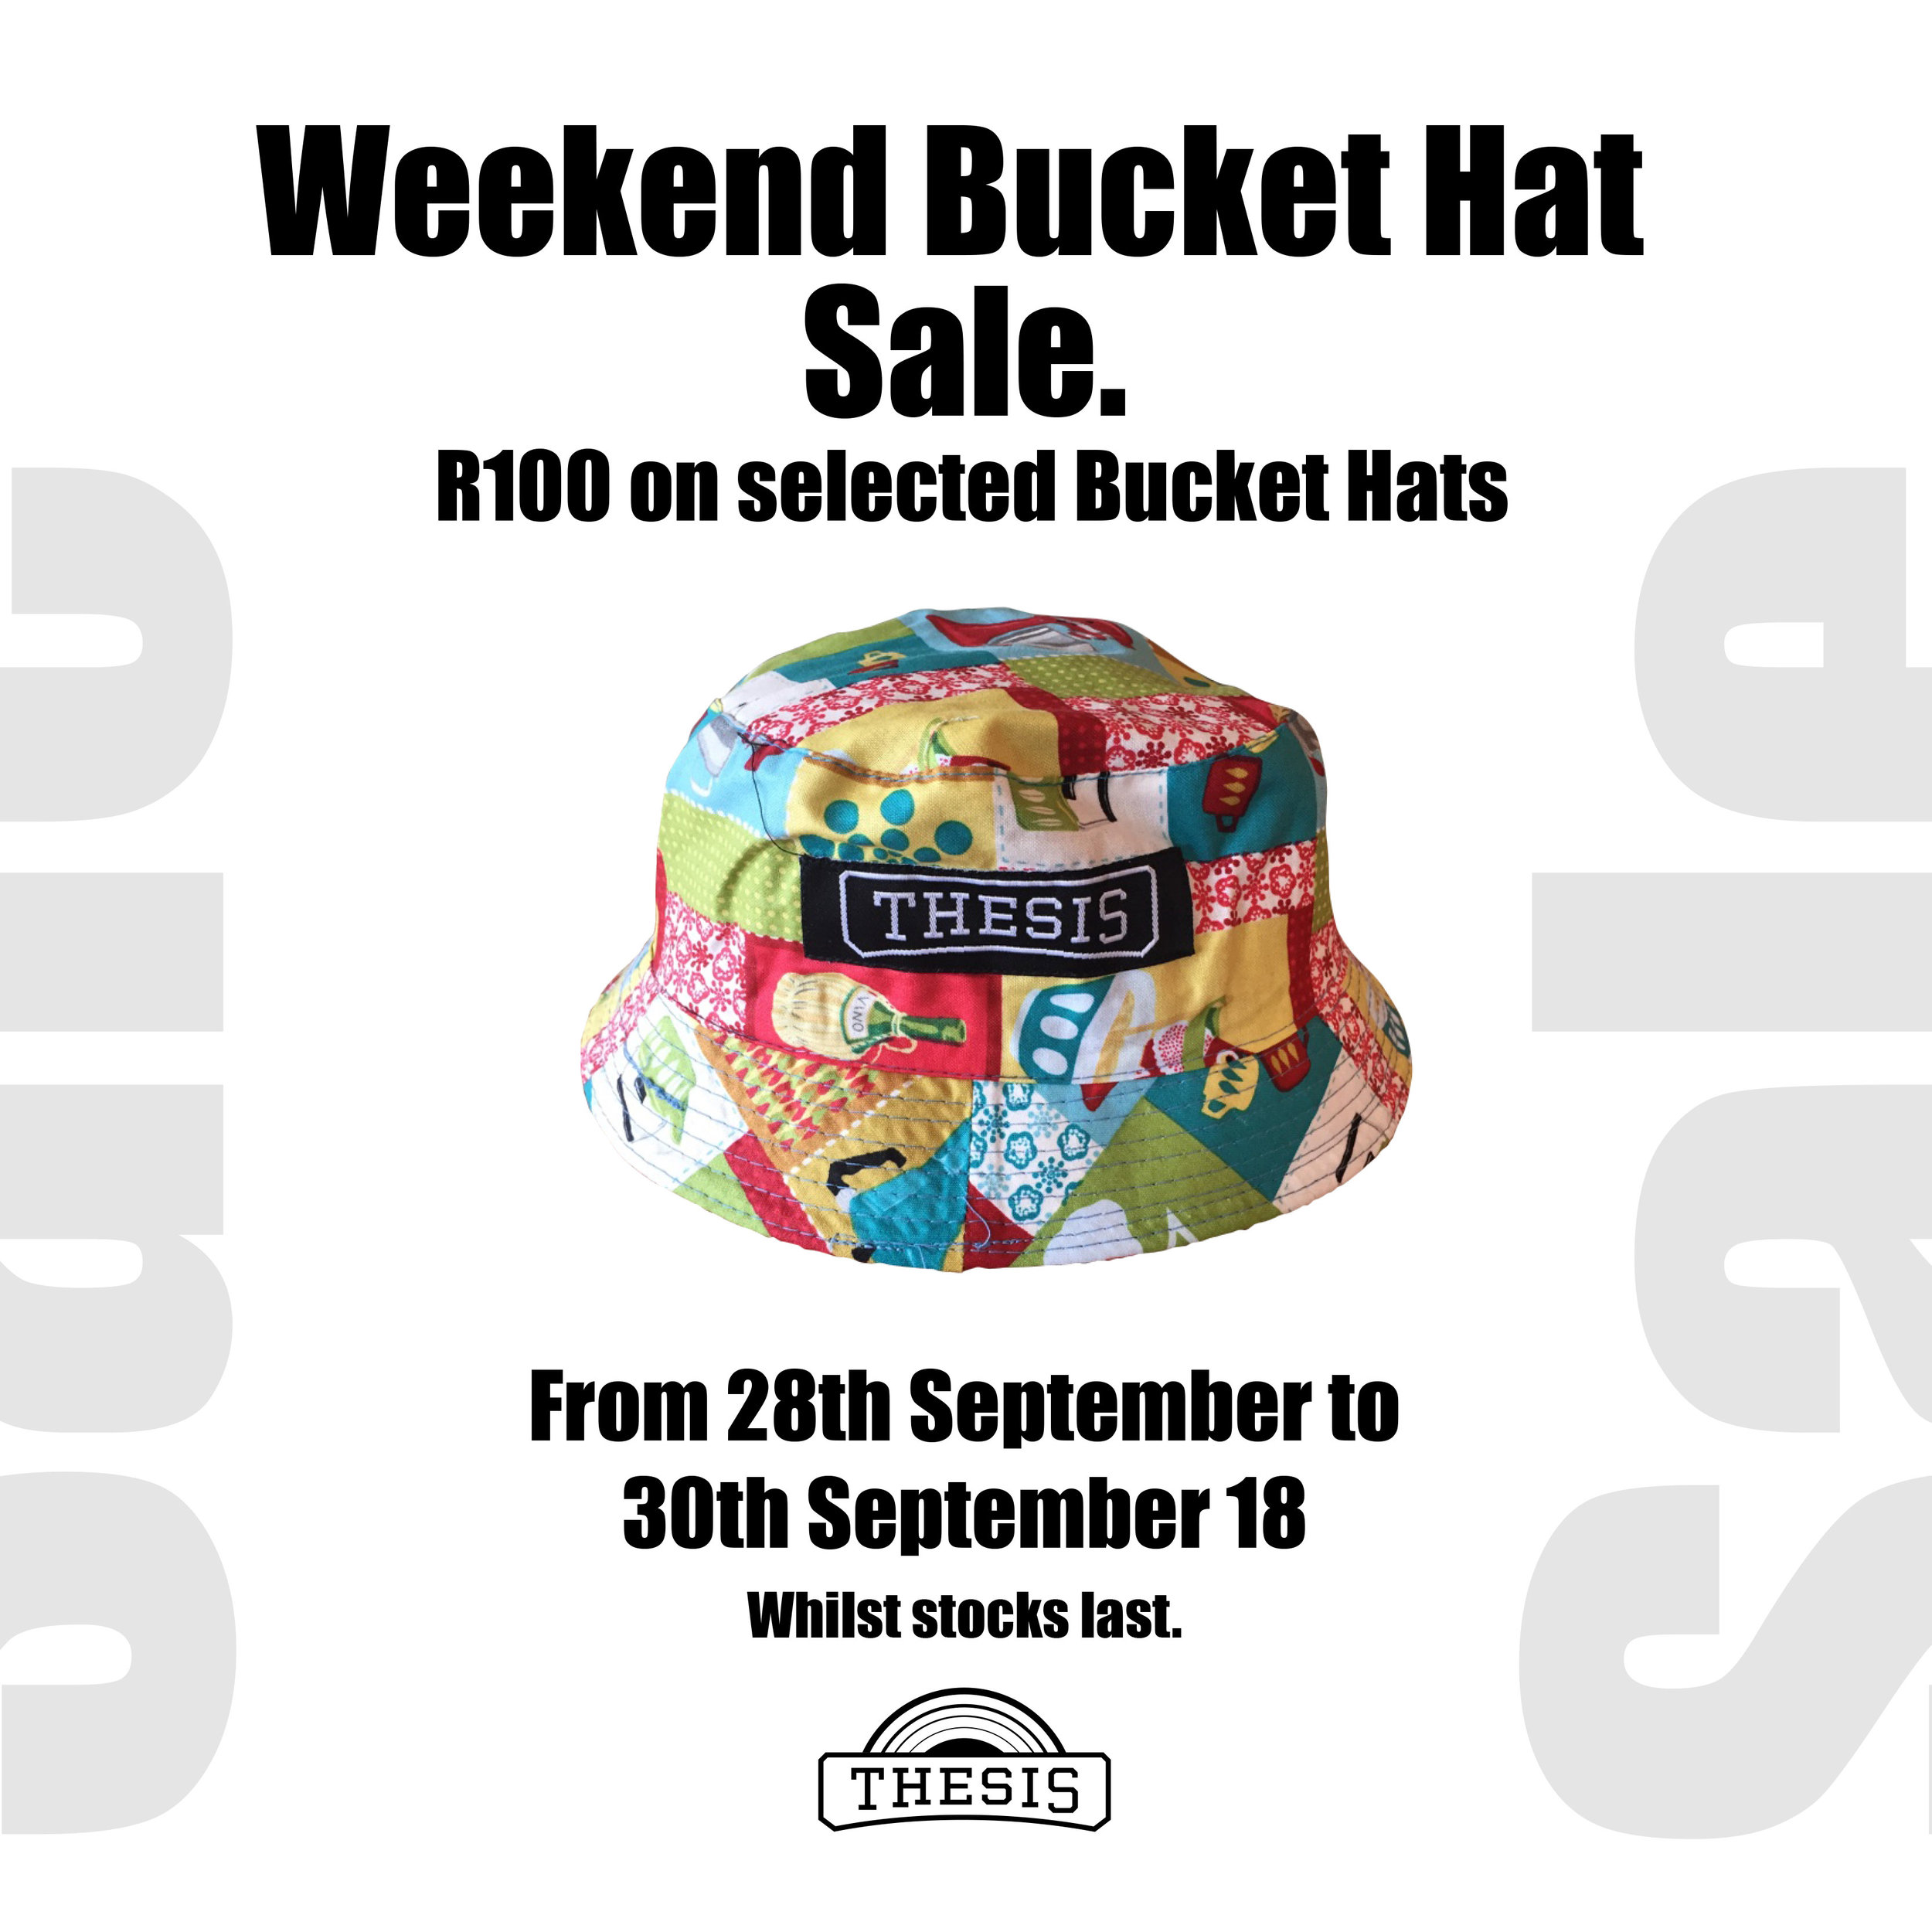 weekend-bucket-hat-sale-2.jpg